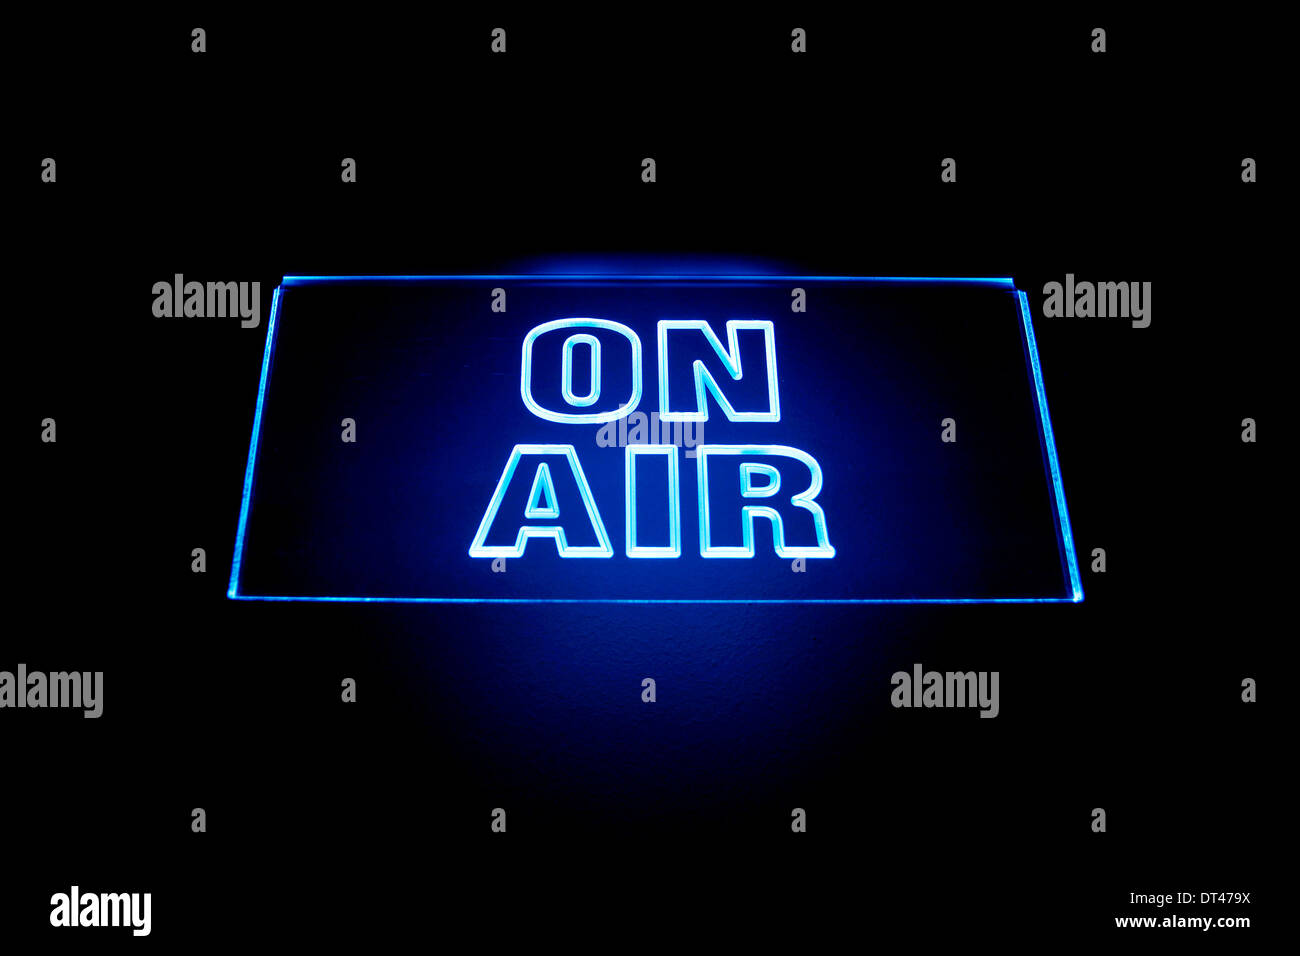 On air signal in a broadcasting studio - Stock Image